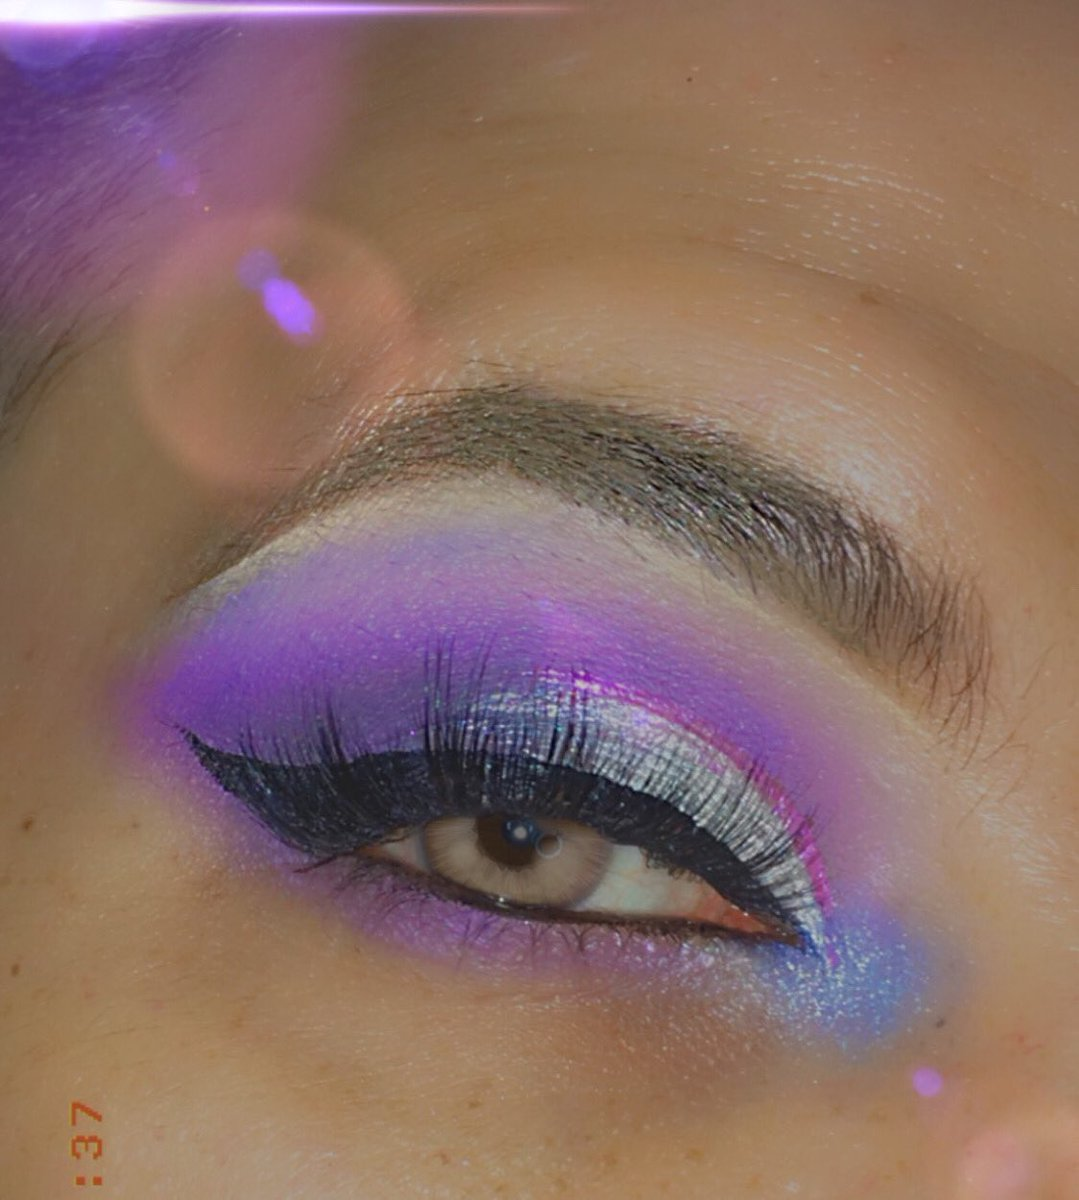 Today's look using @MorpheBrushes 35I palette and @KissProducts lashes in style Russian volume #morphebabe #kissproducts #kisslashes https://t.co/yclKdJpKQq